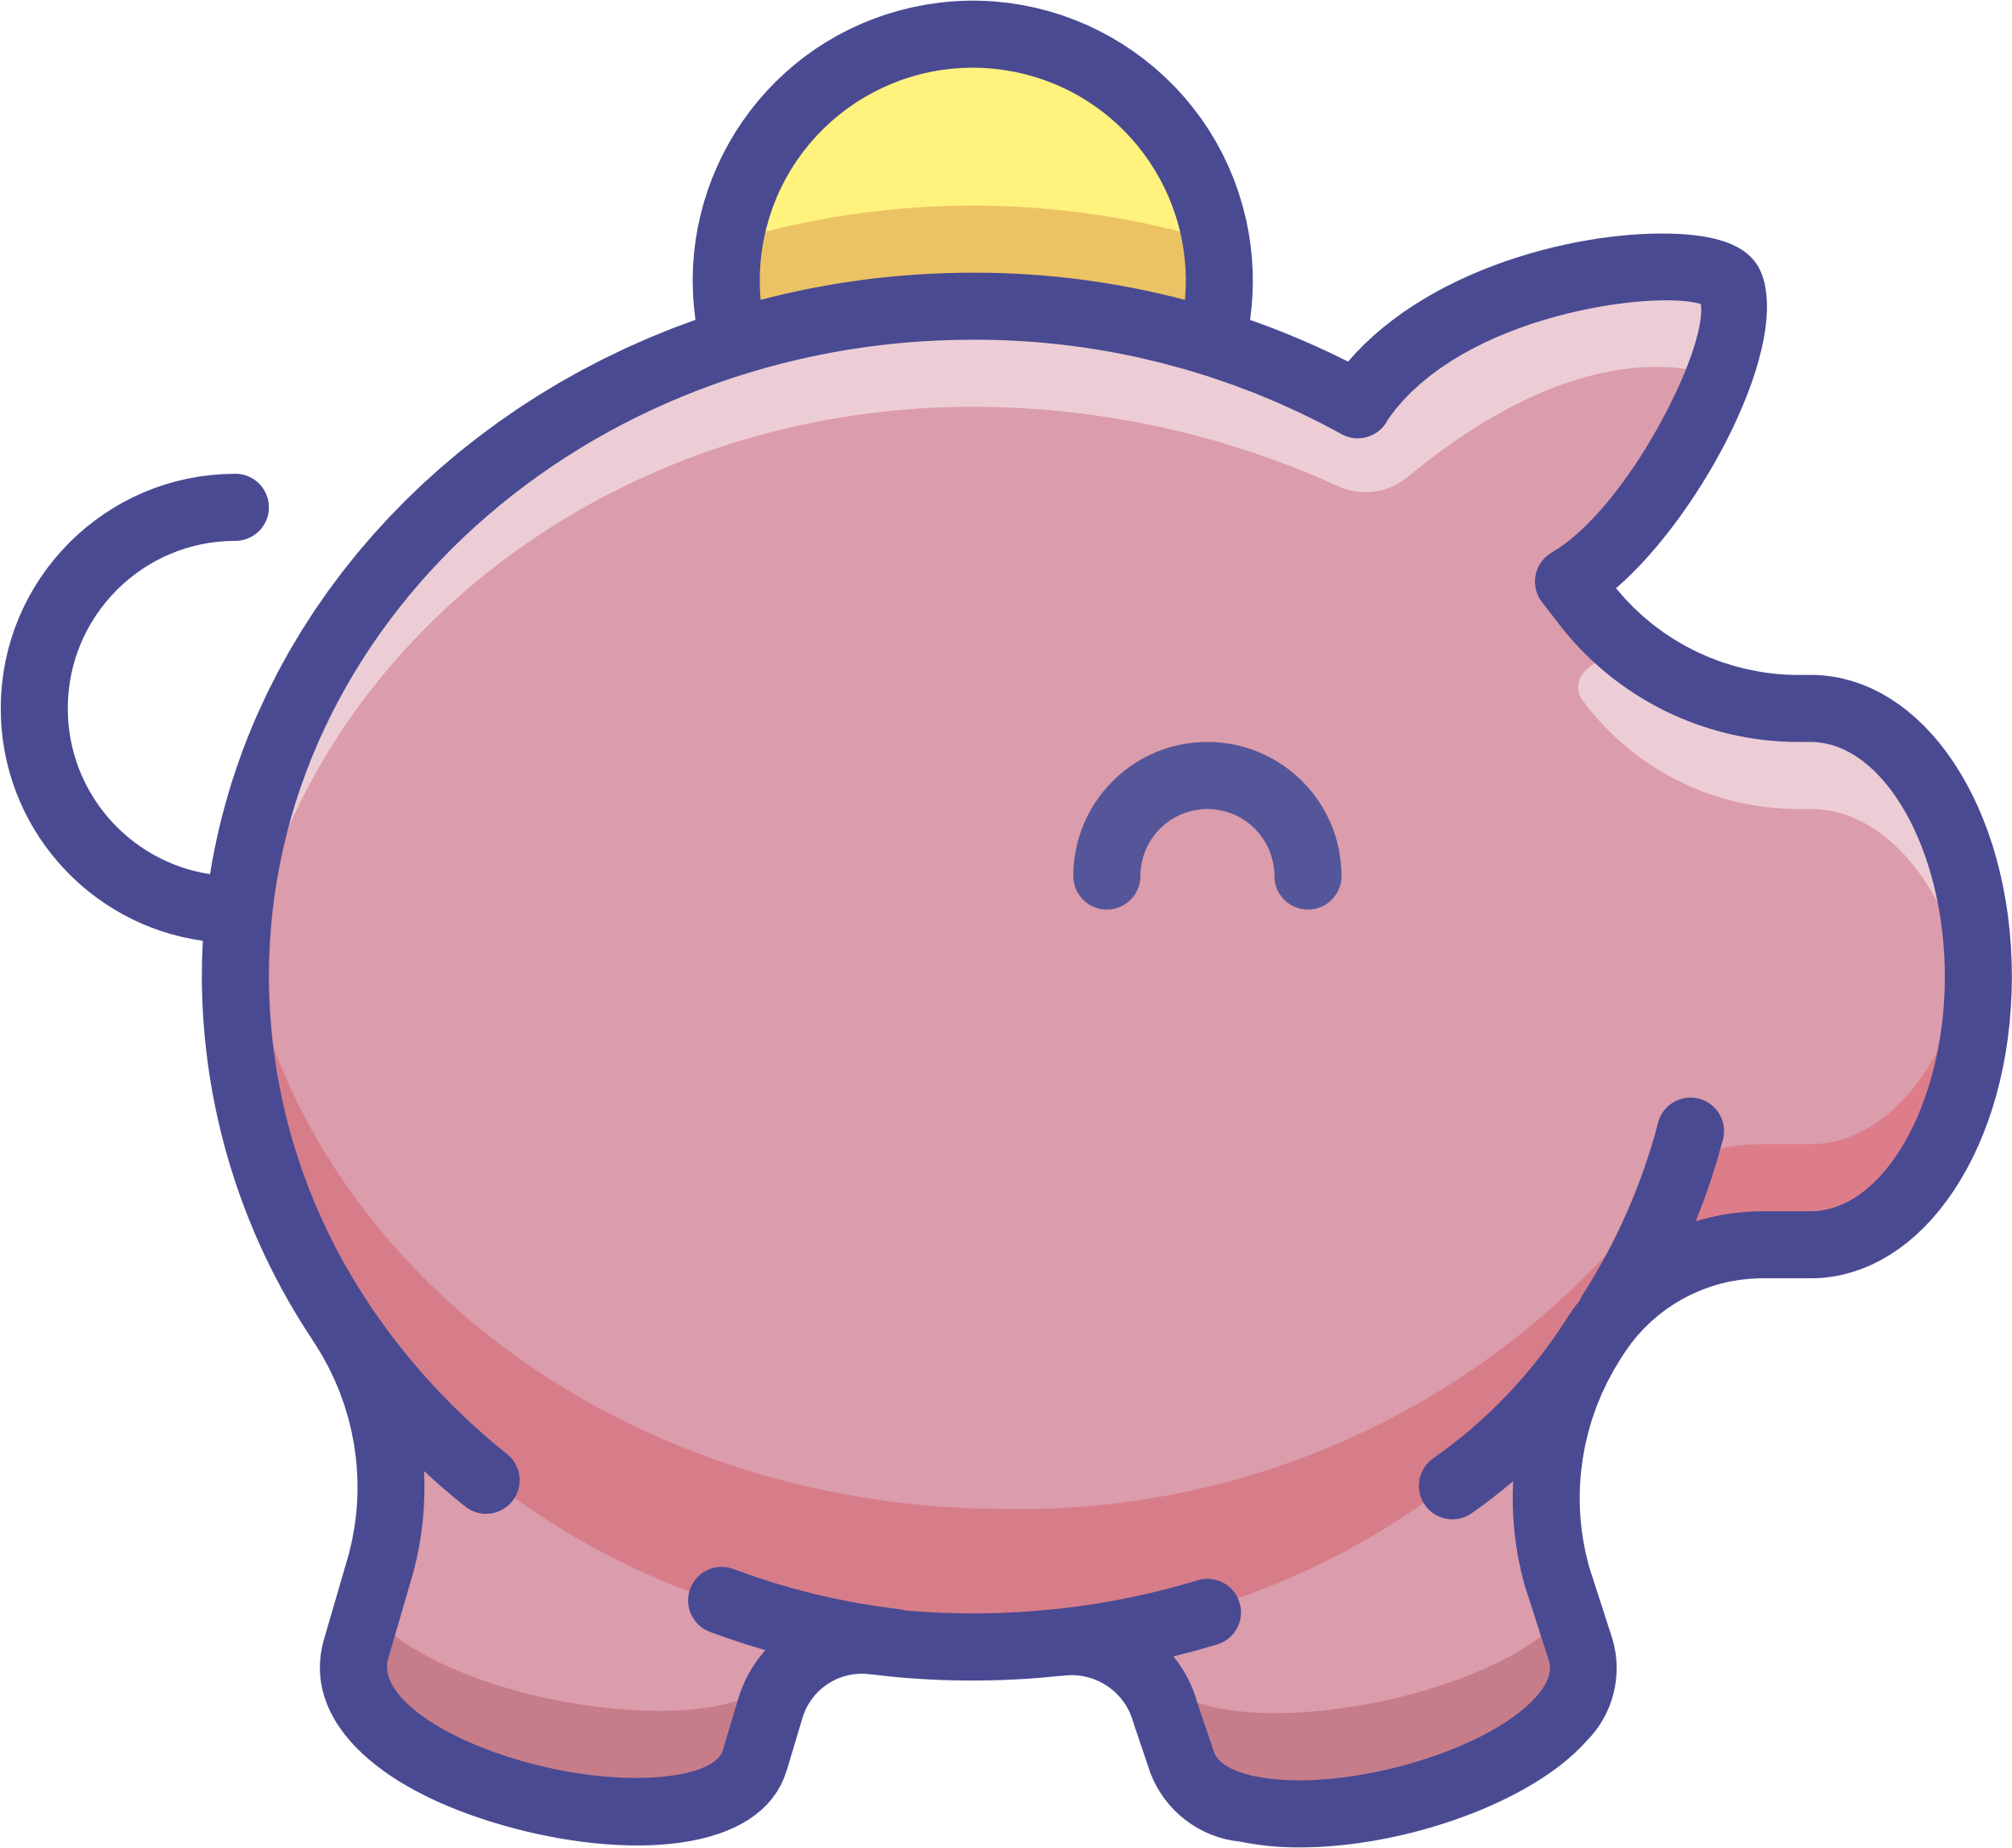 Clipart money pig. Feed the big image